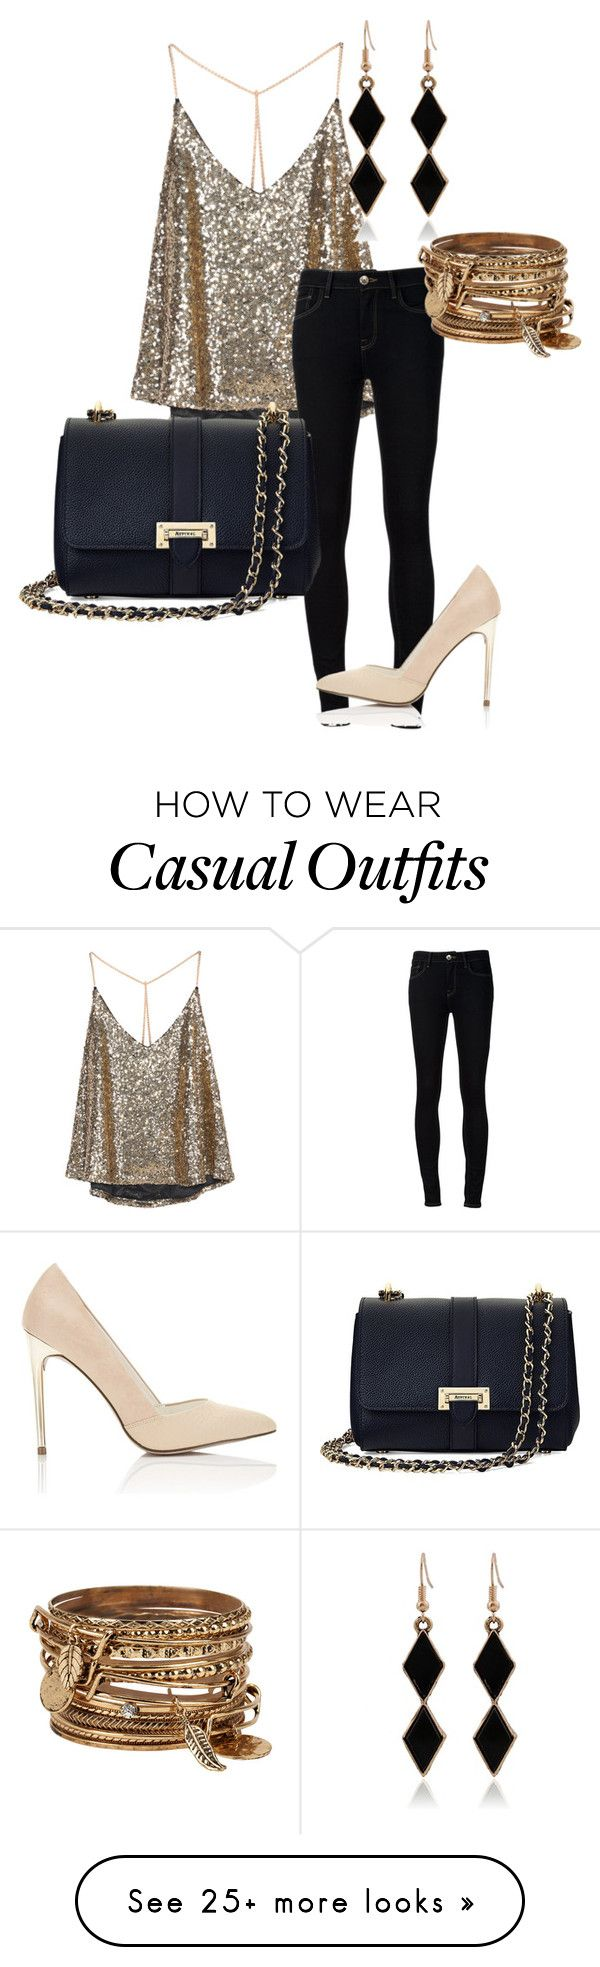 """Style #31 - Casual Night Out"" by acobb22 on Polyvore featuring Ström, Miss Selfridge, Aspinal of London and ALDO"